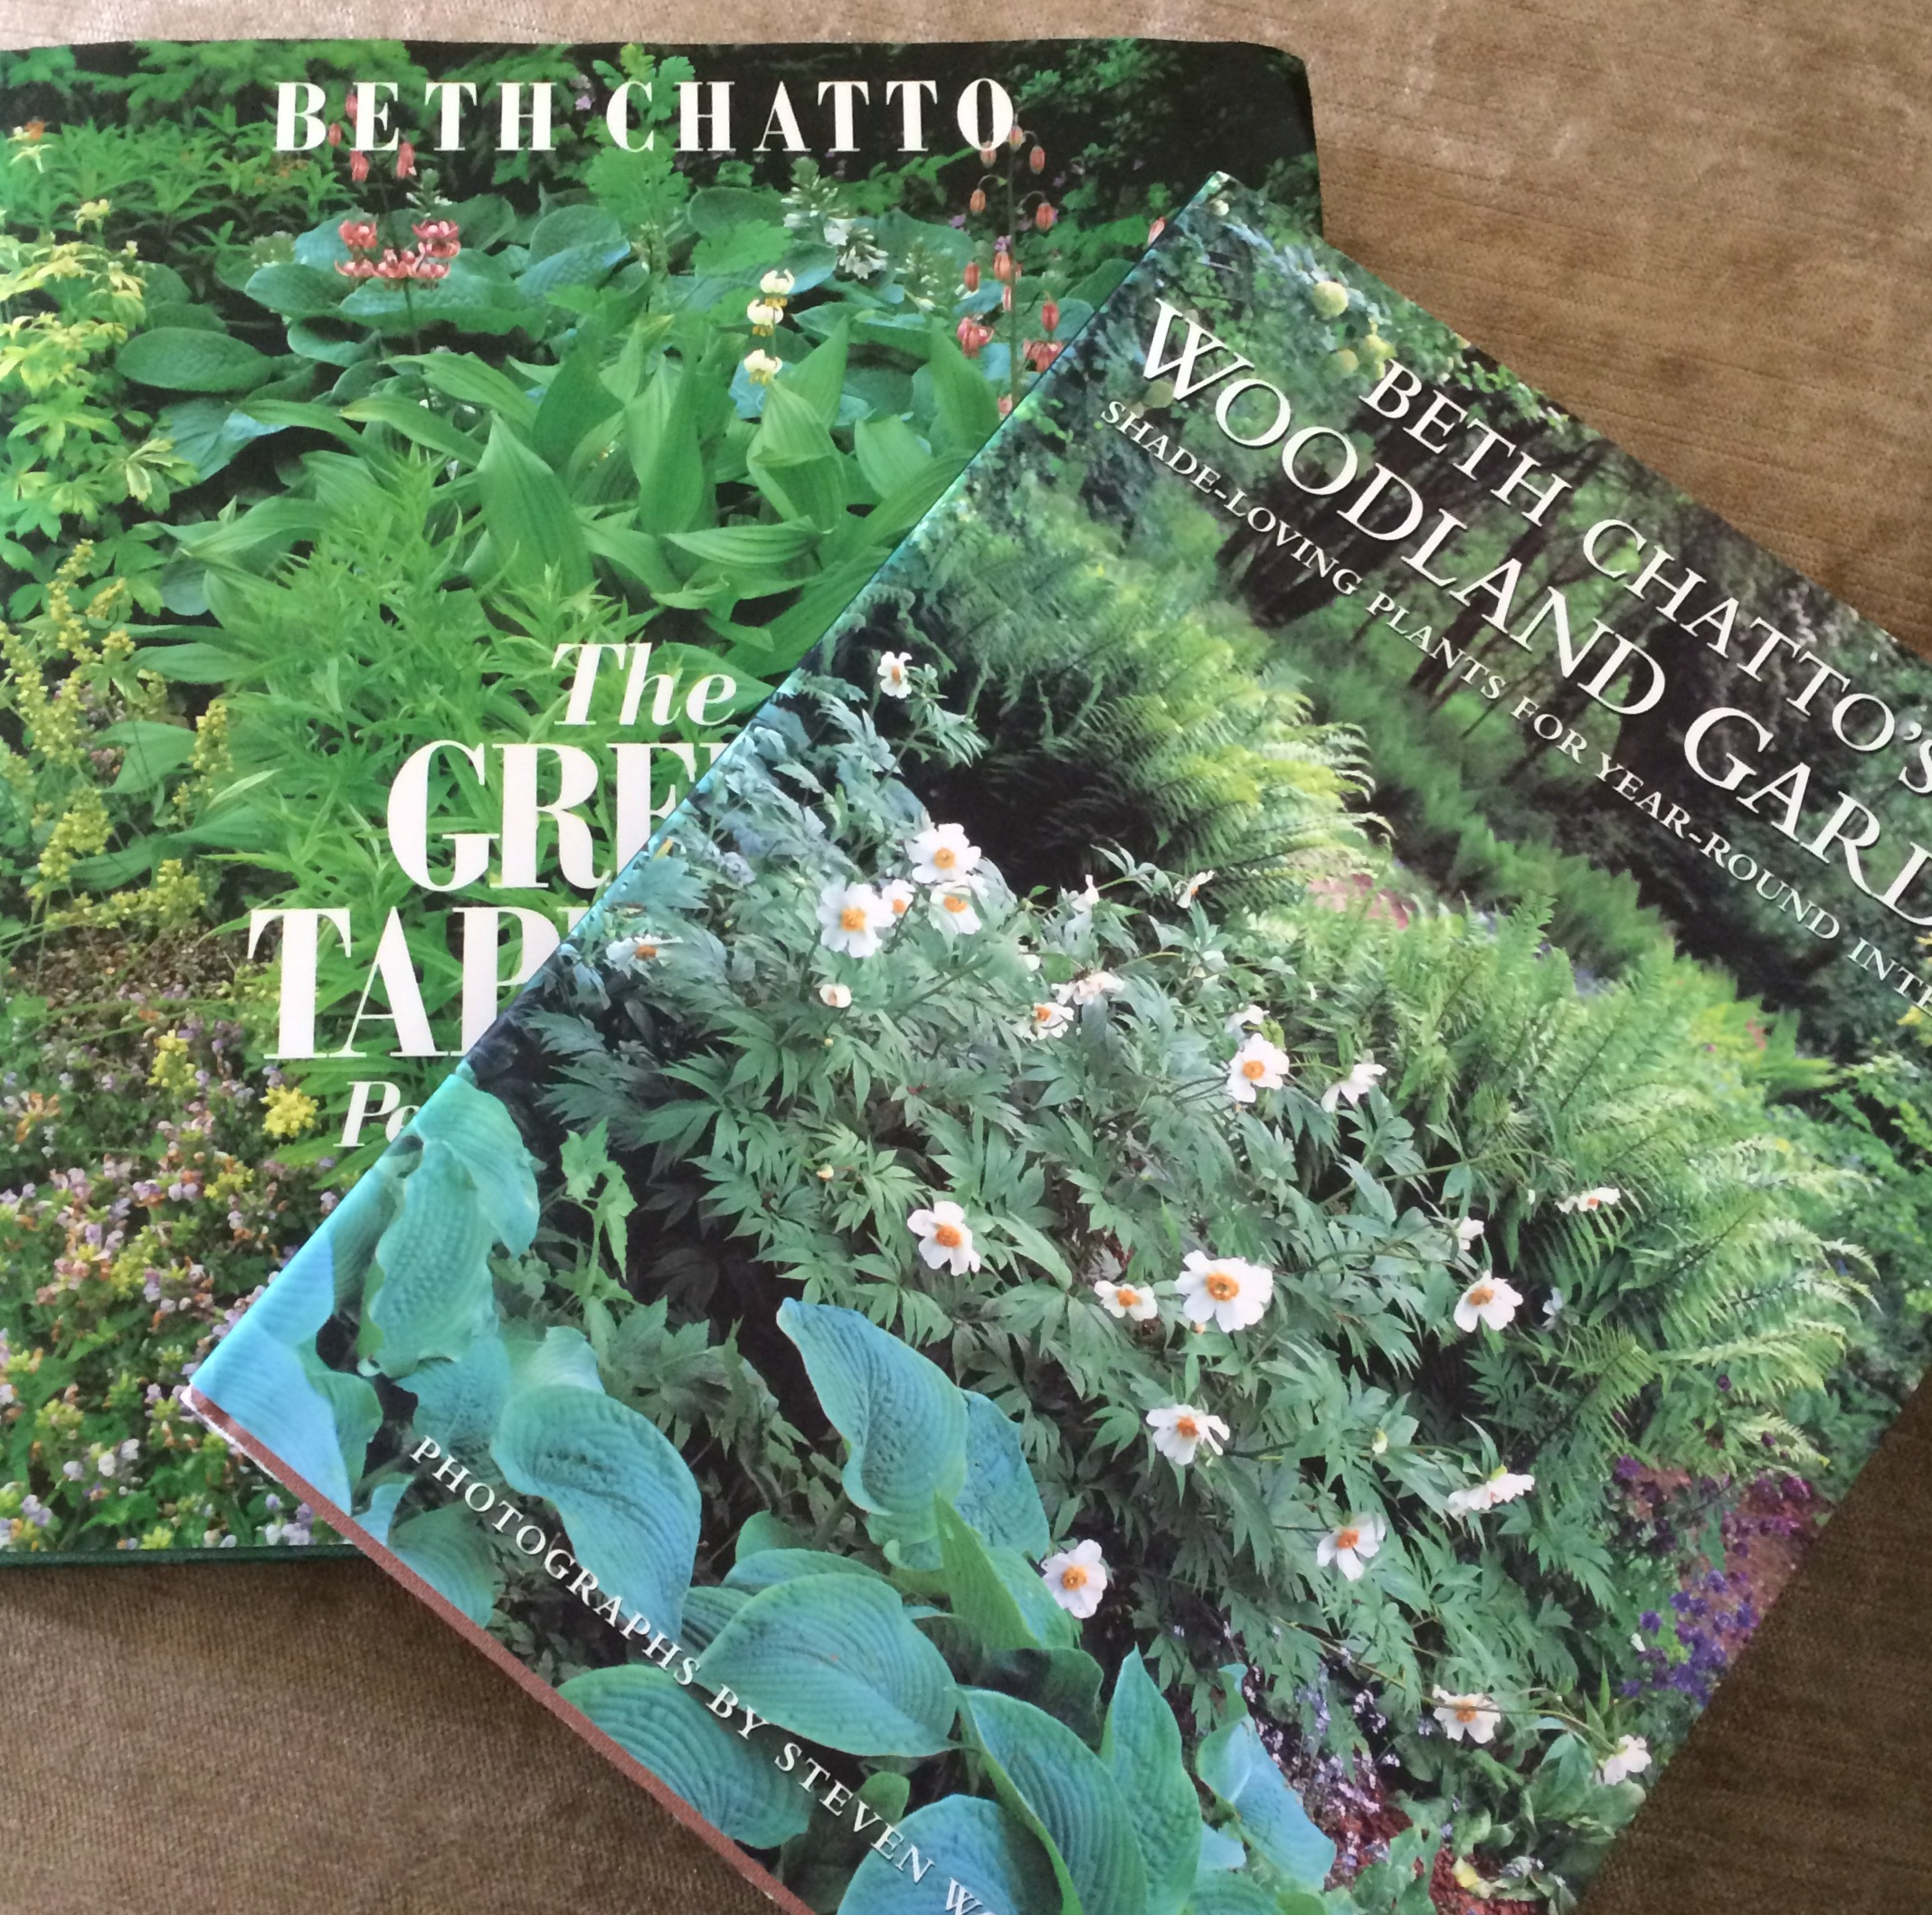 Beth Chatto books